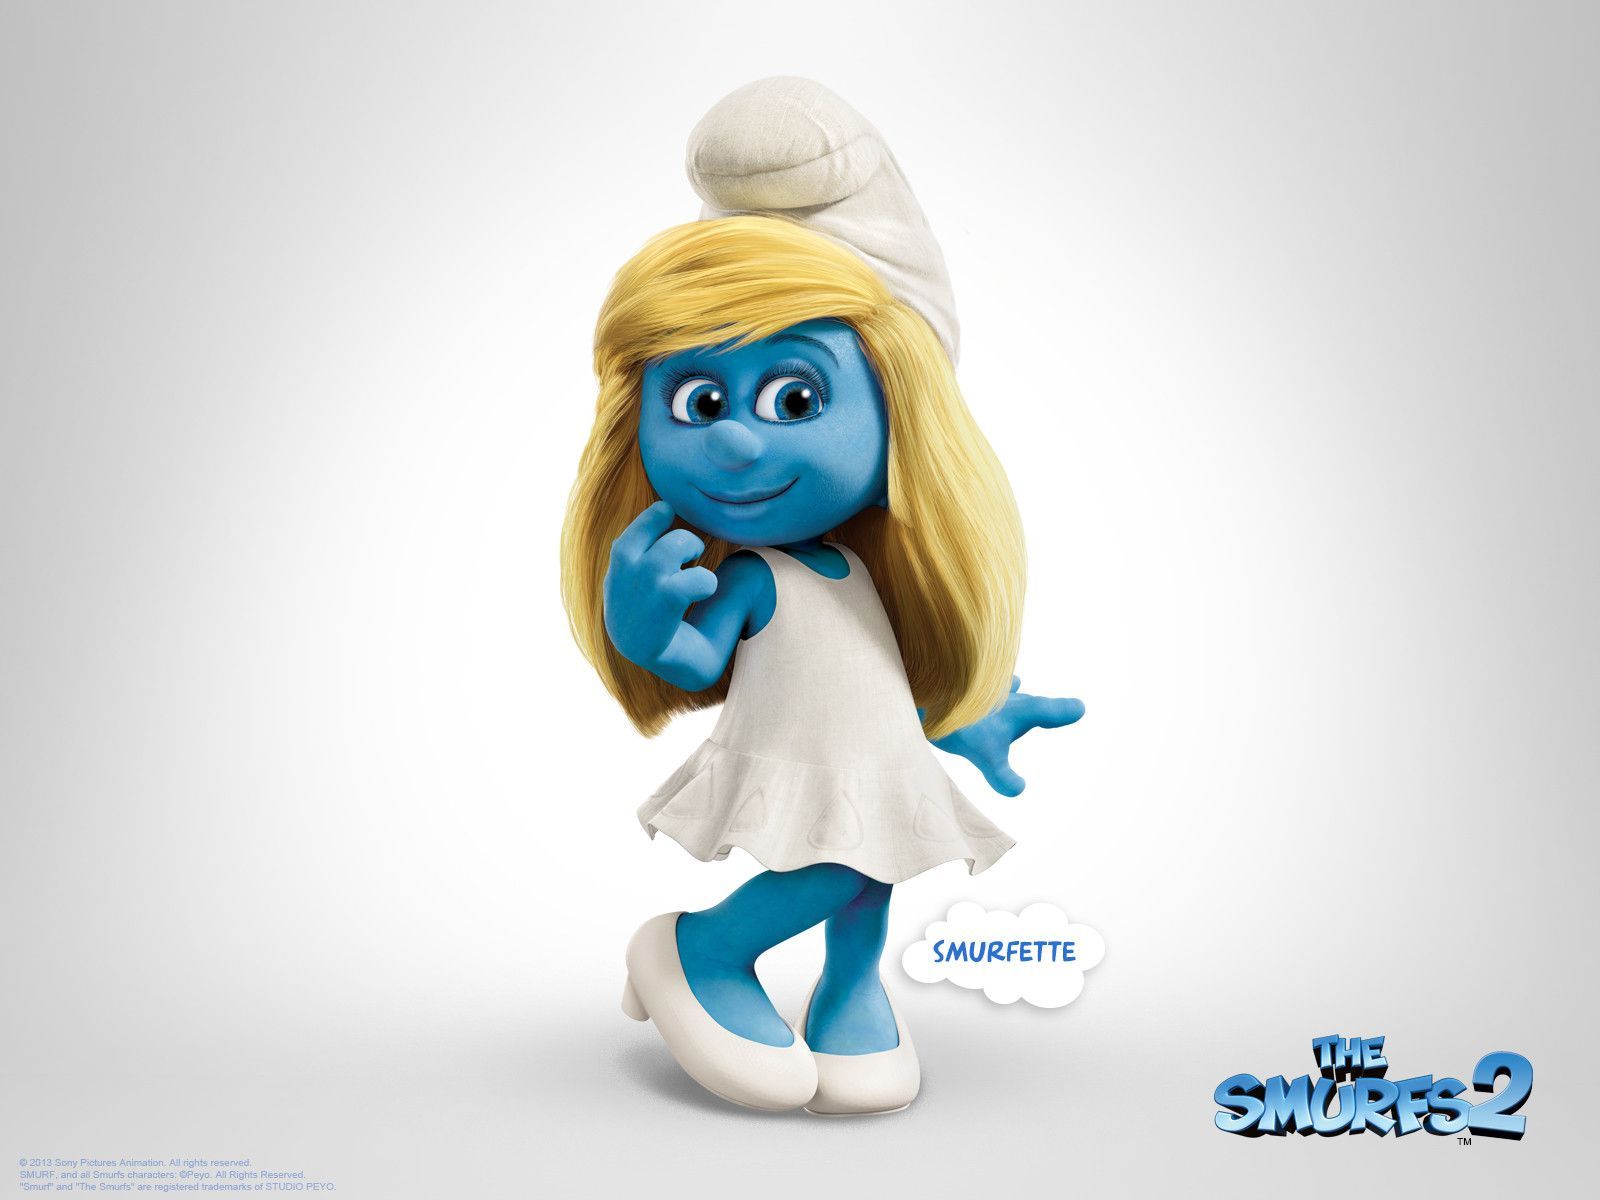 katy perry smurfette in the smurfs 2 wallpaper - http://bgwall